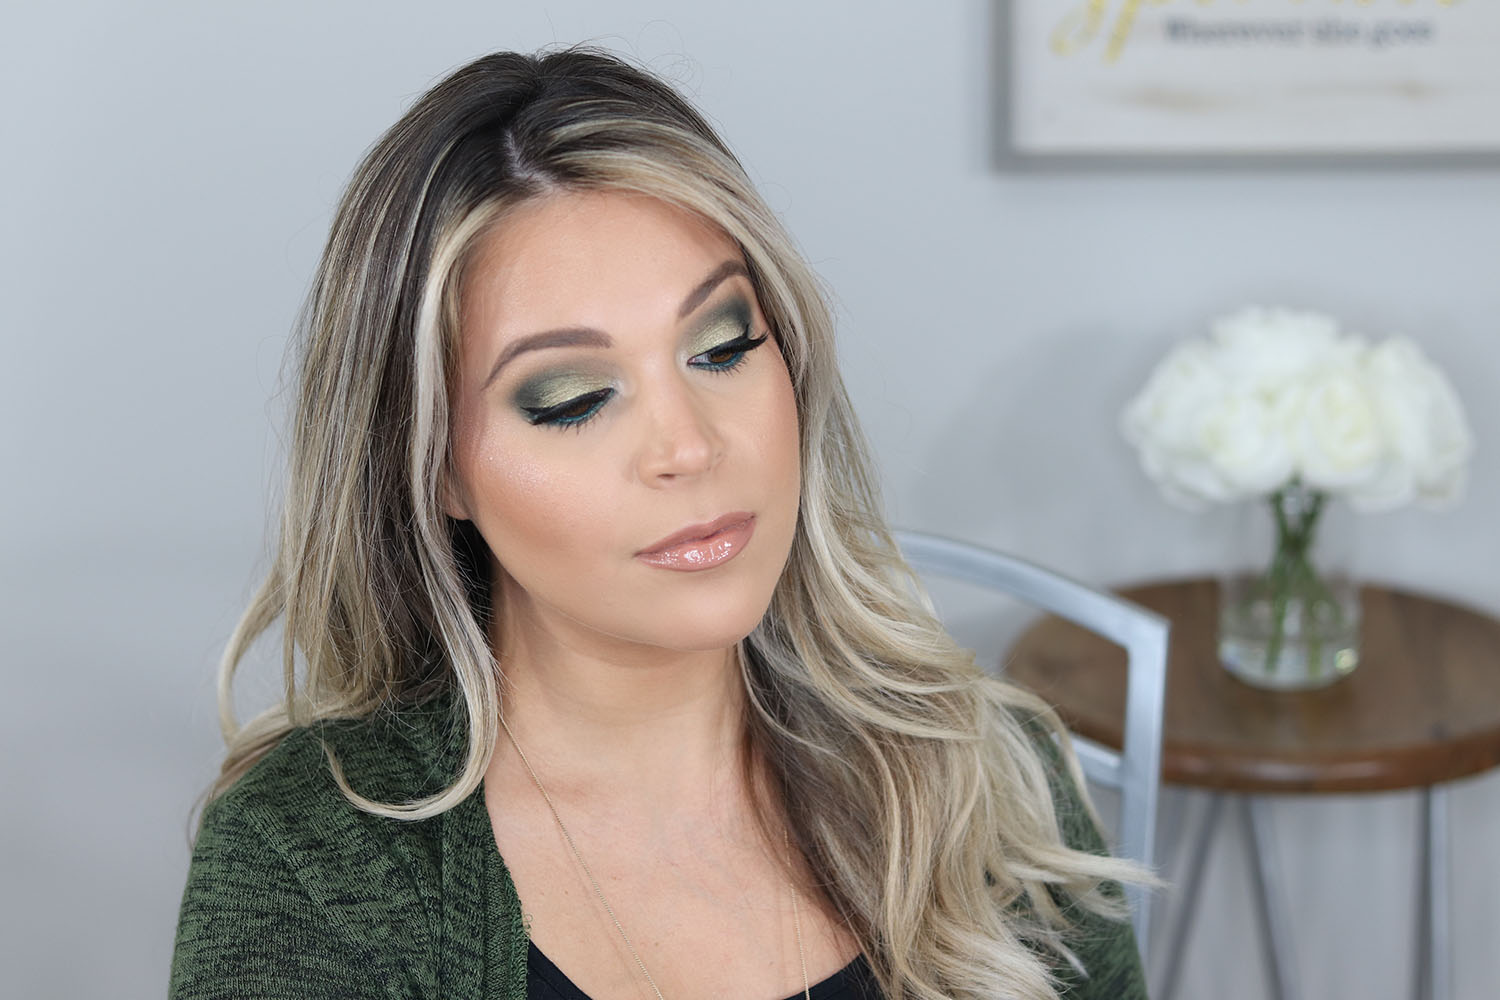 Makeup Revolution The Emily Edit The Wants Palette Green Eye Makeup Look on Brown Eyes